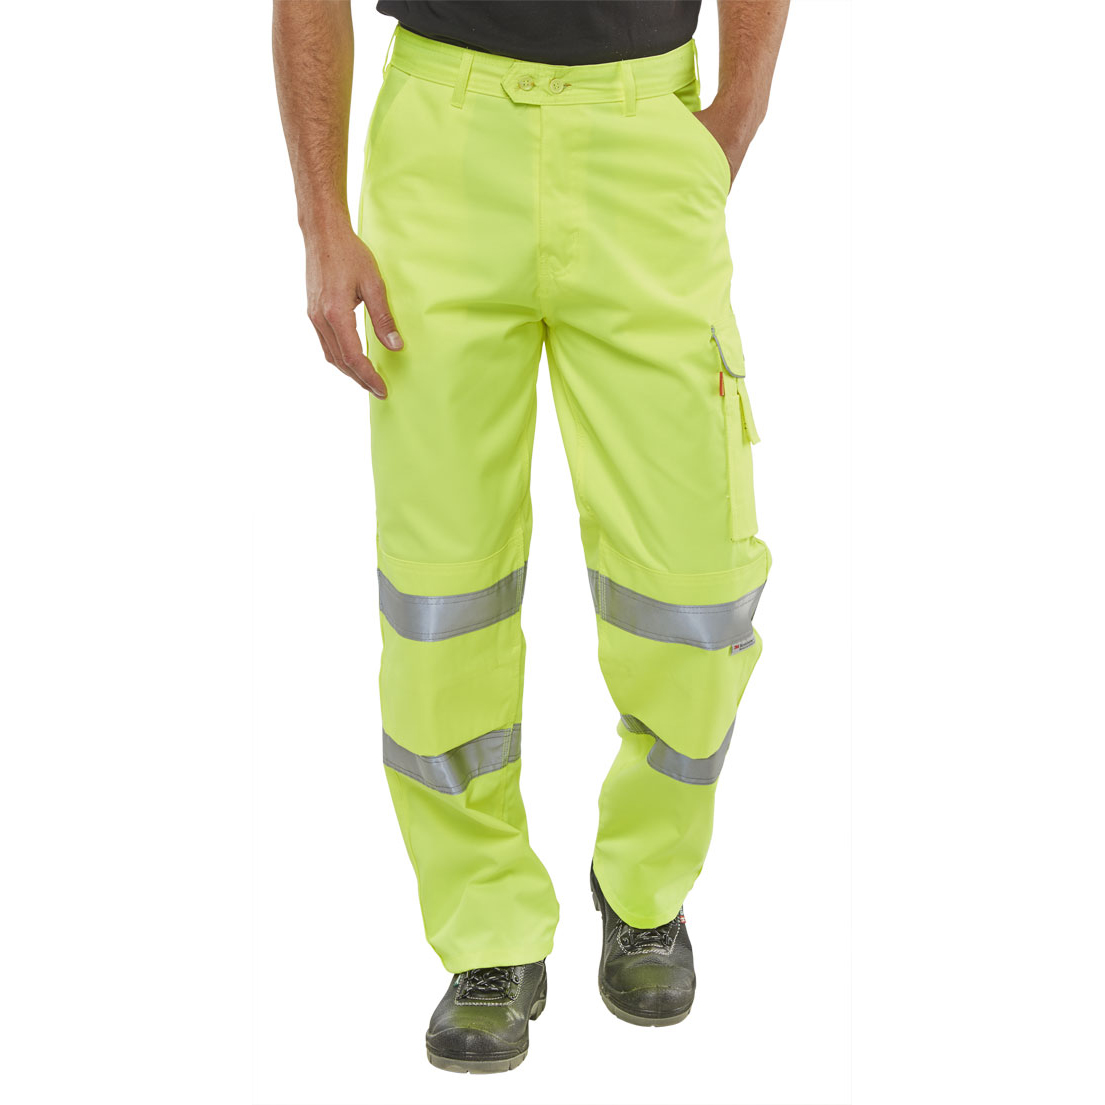 BSeen Trousers Polycotton Hi-Vis EN471 Saturn Yellow 48 Ref PCTENSY48 Up to 3 Day Leadtime